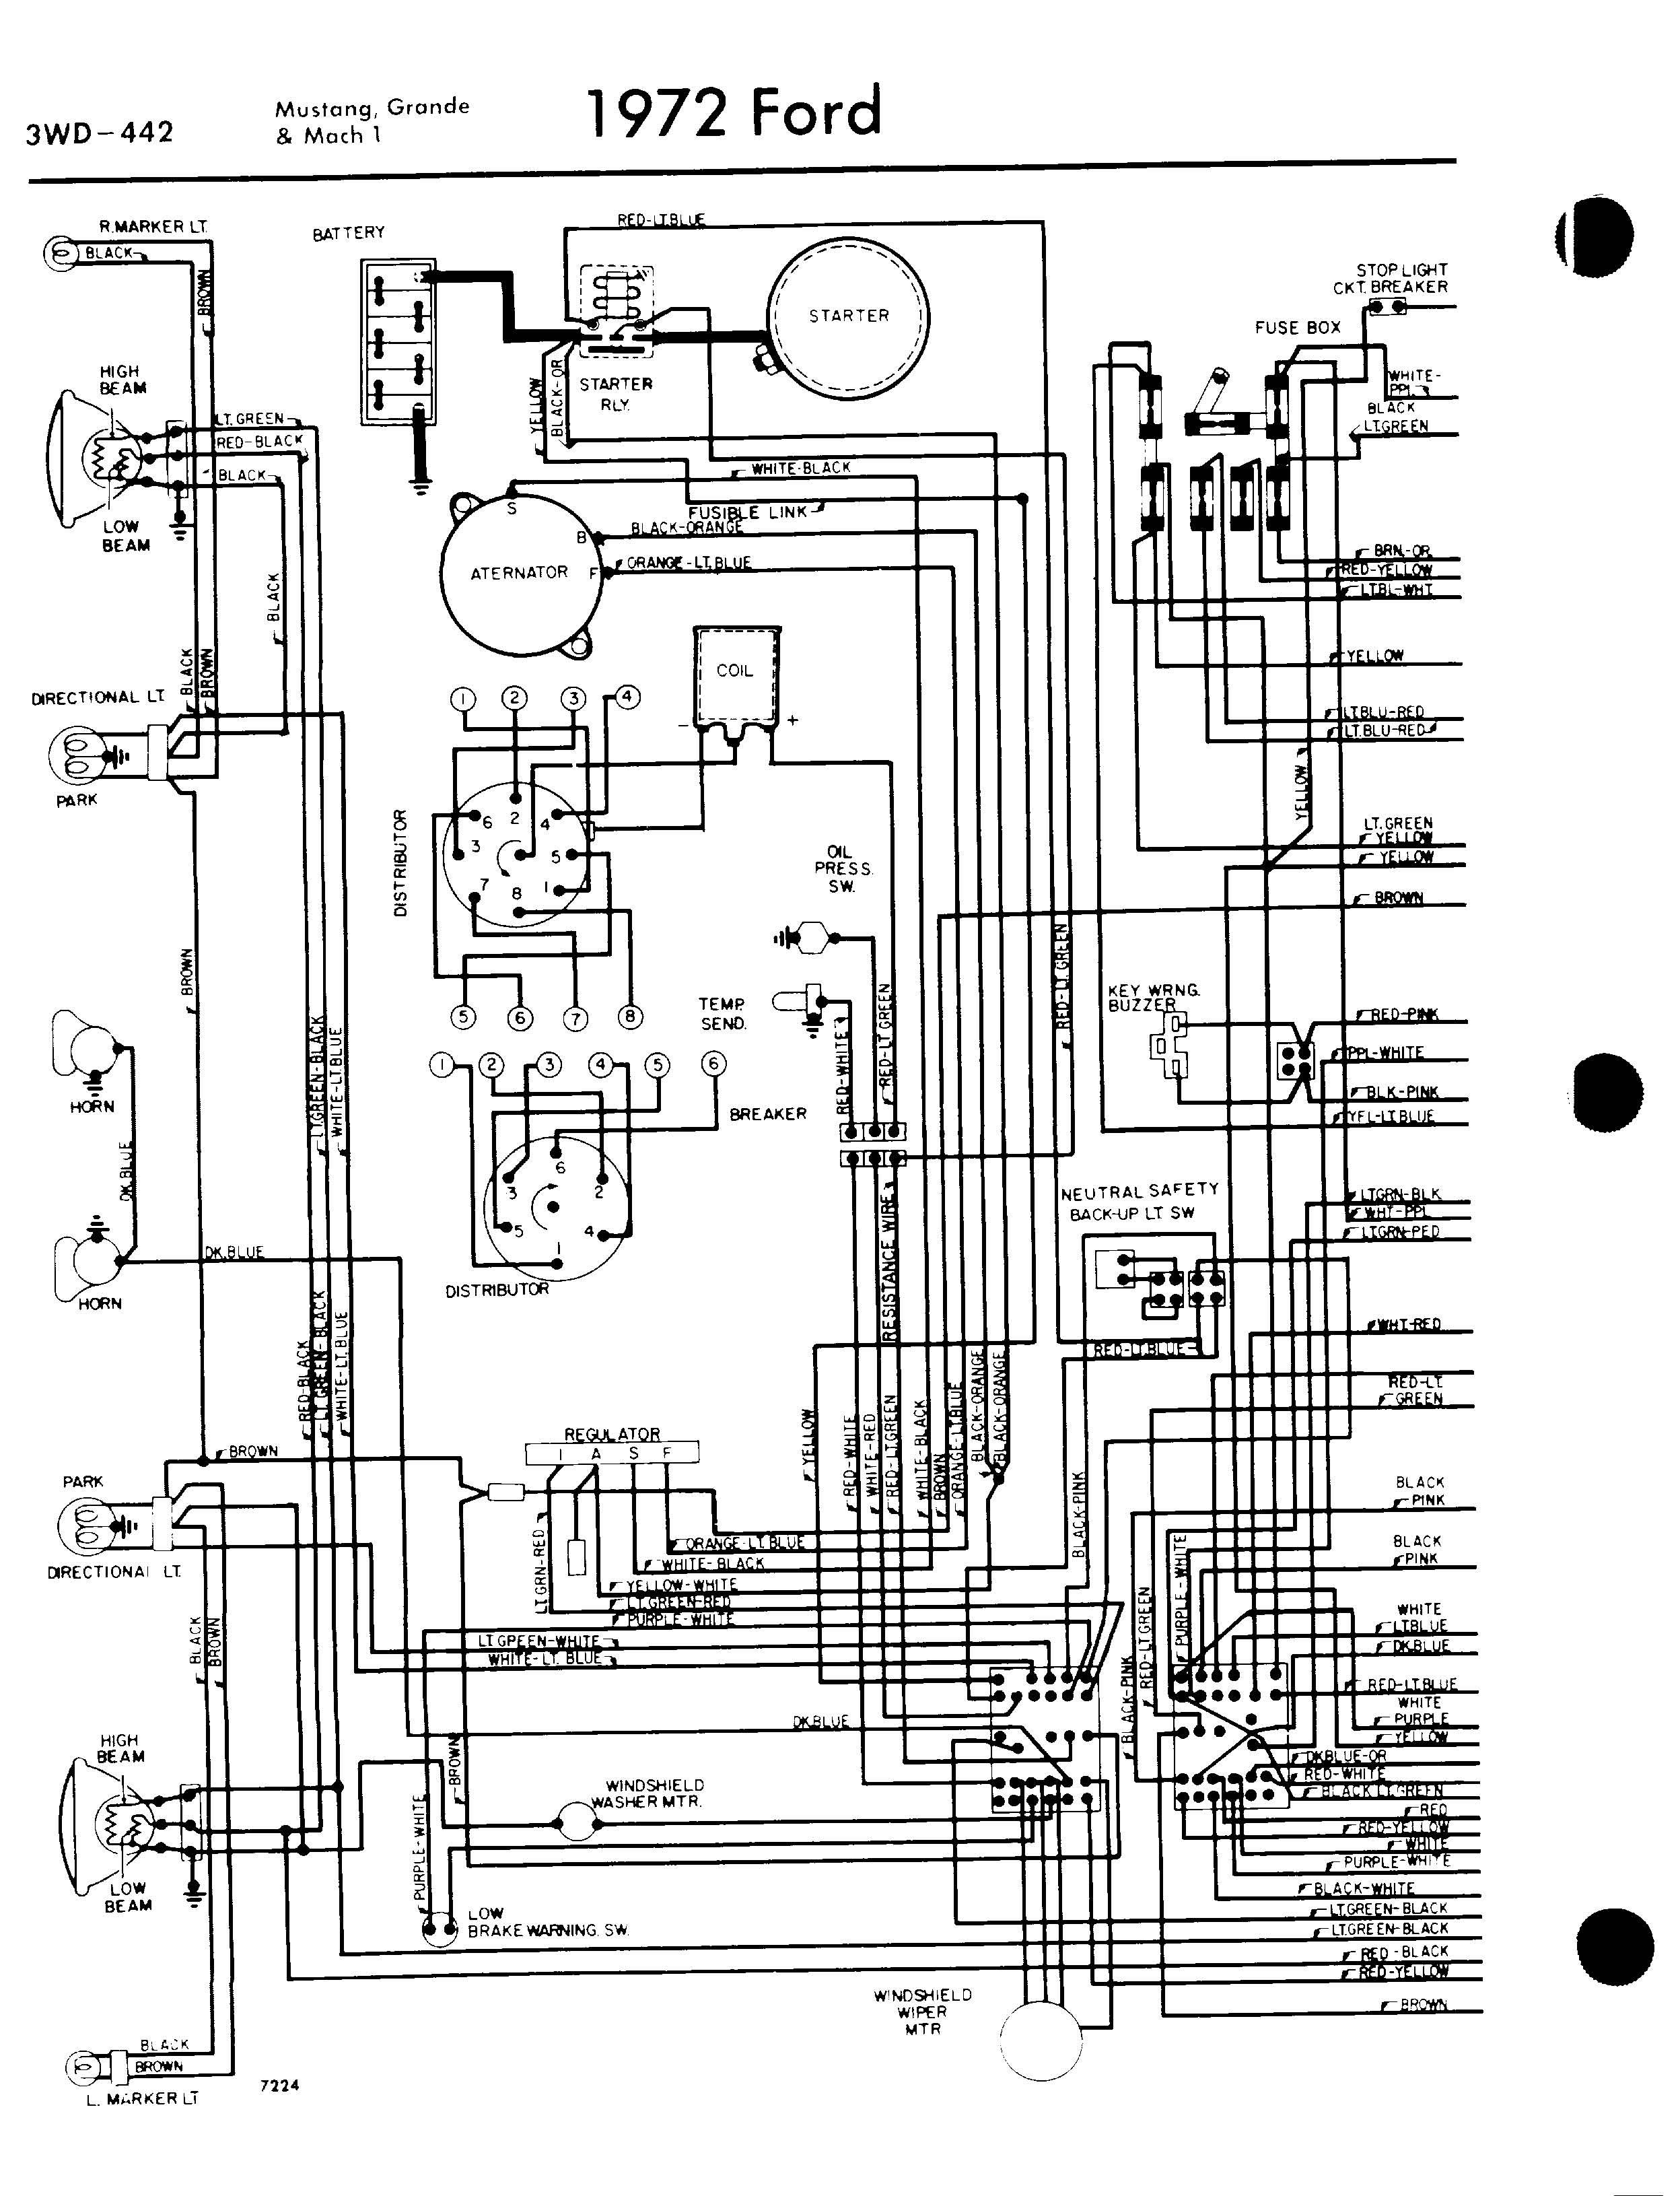 Ford Alternator Wiring Harness - Wiring Diagrams Load